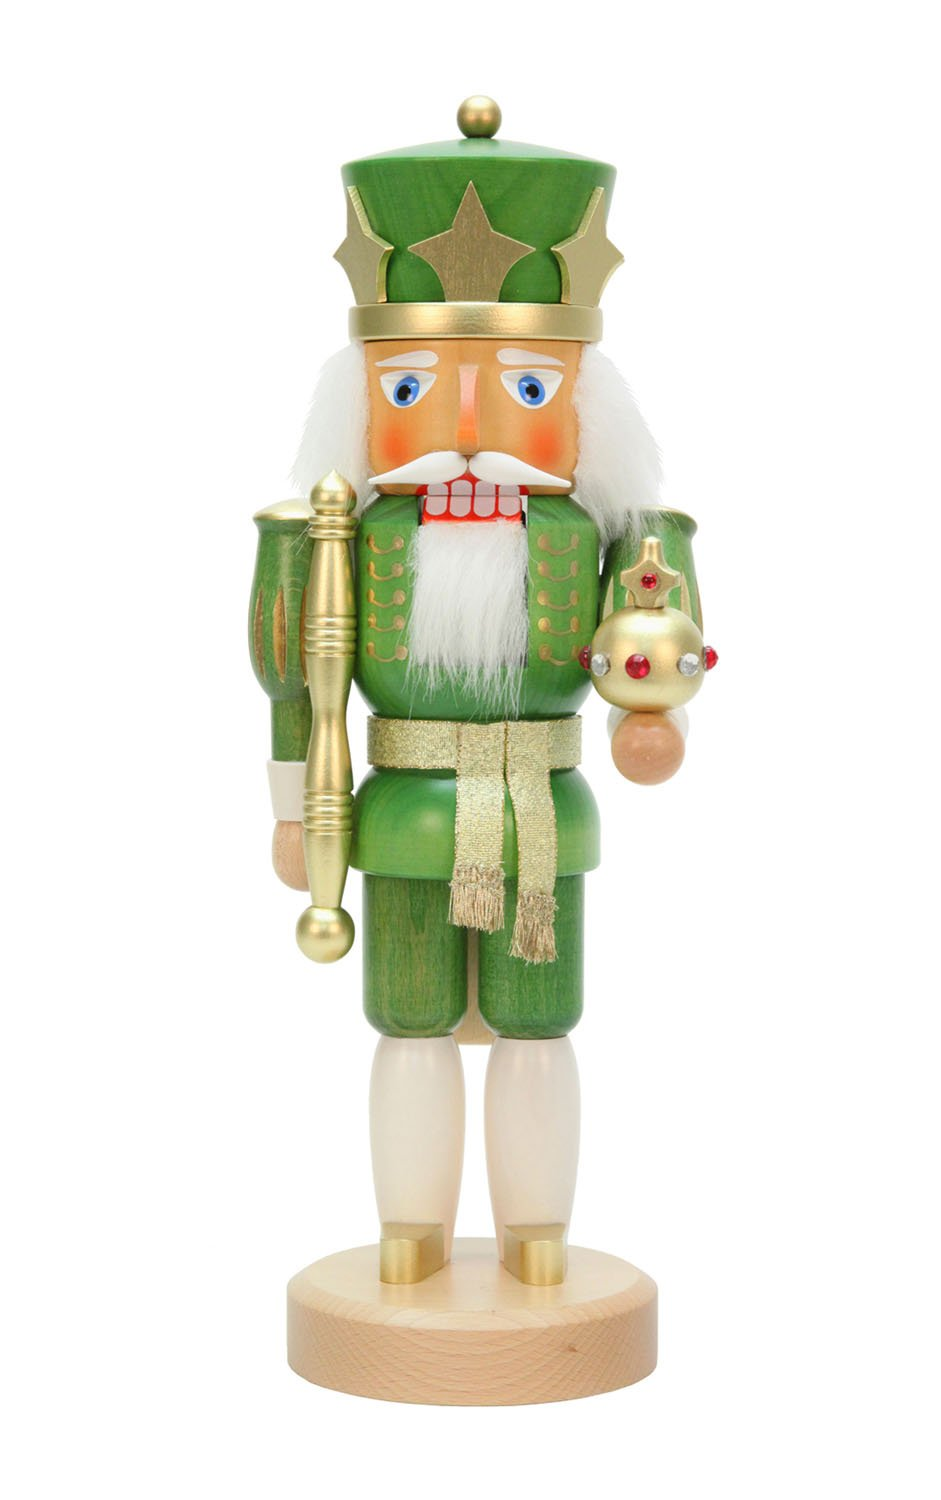 Alexander Taron Christian Ulbricht Decorative Green King Nutcracker